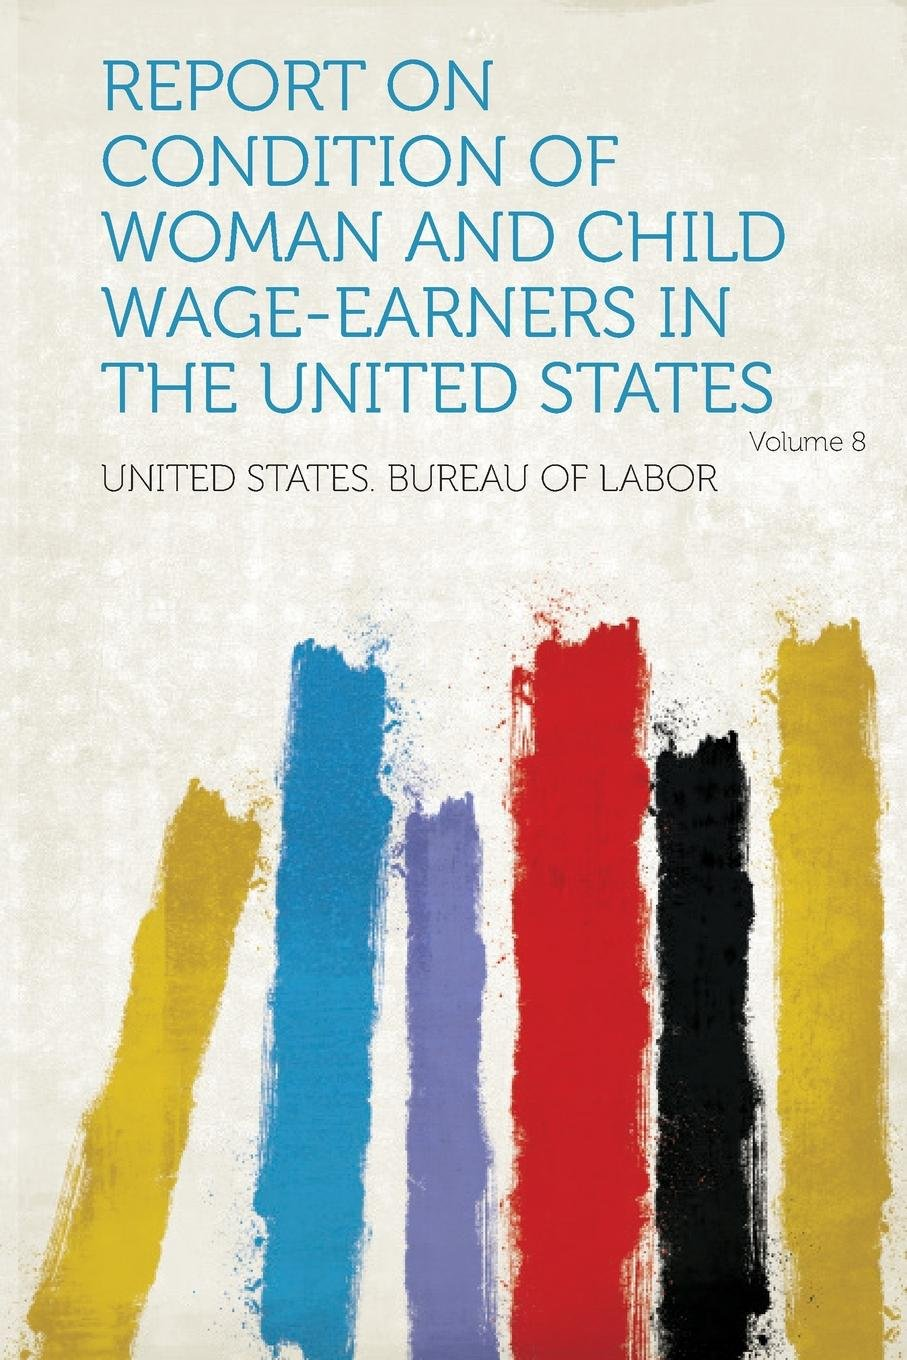 Read Online Report on Condition of Woman and Child Wage-Earners in the United States Volume 8 PDF